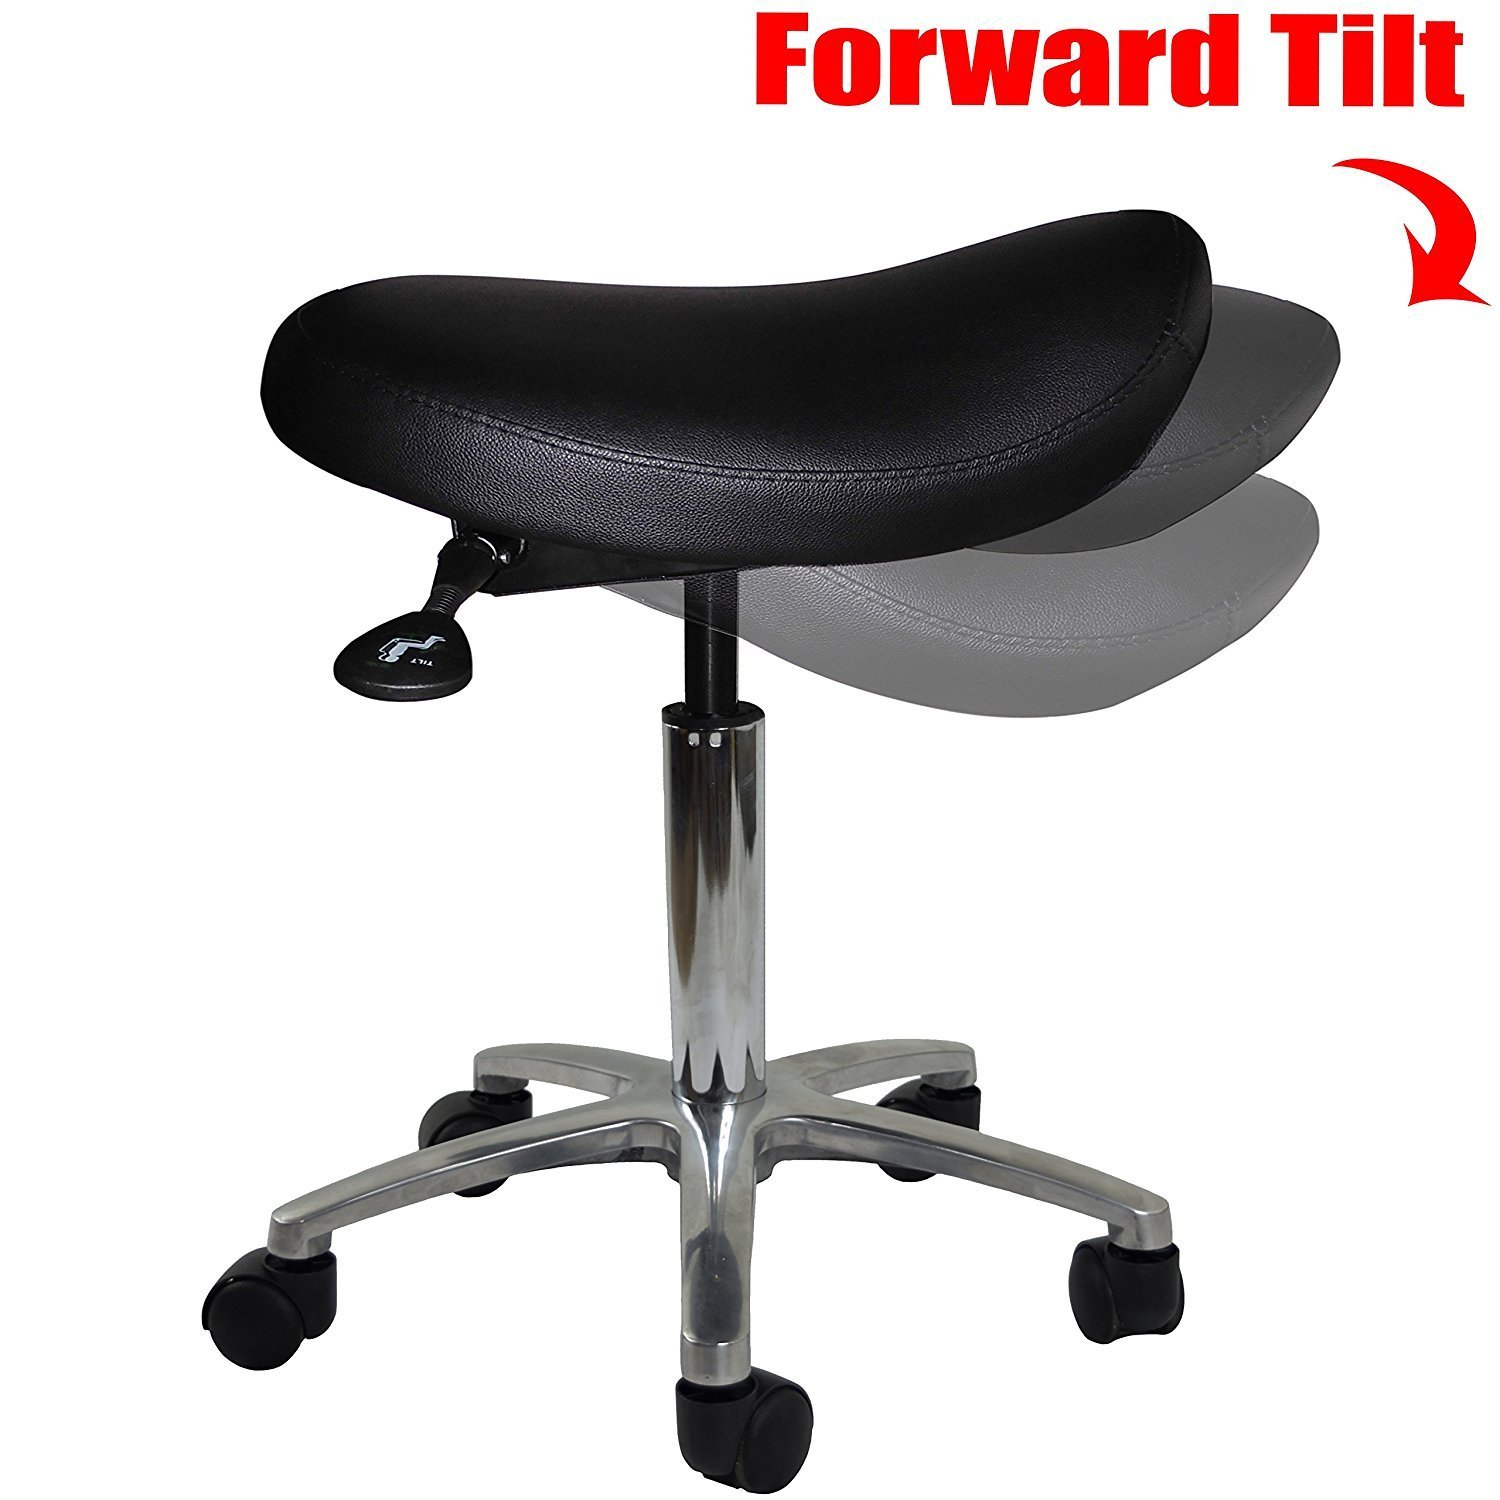 2xhome - Adjustable Saddle Stool Chair with Forward Tilting Seat for Clinic Hospital Pharmacy Medical Beauty Lab Exam Office Technician Physical Occupational Therapy Physician